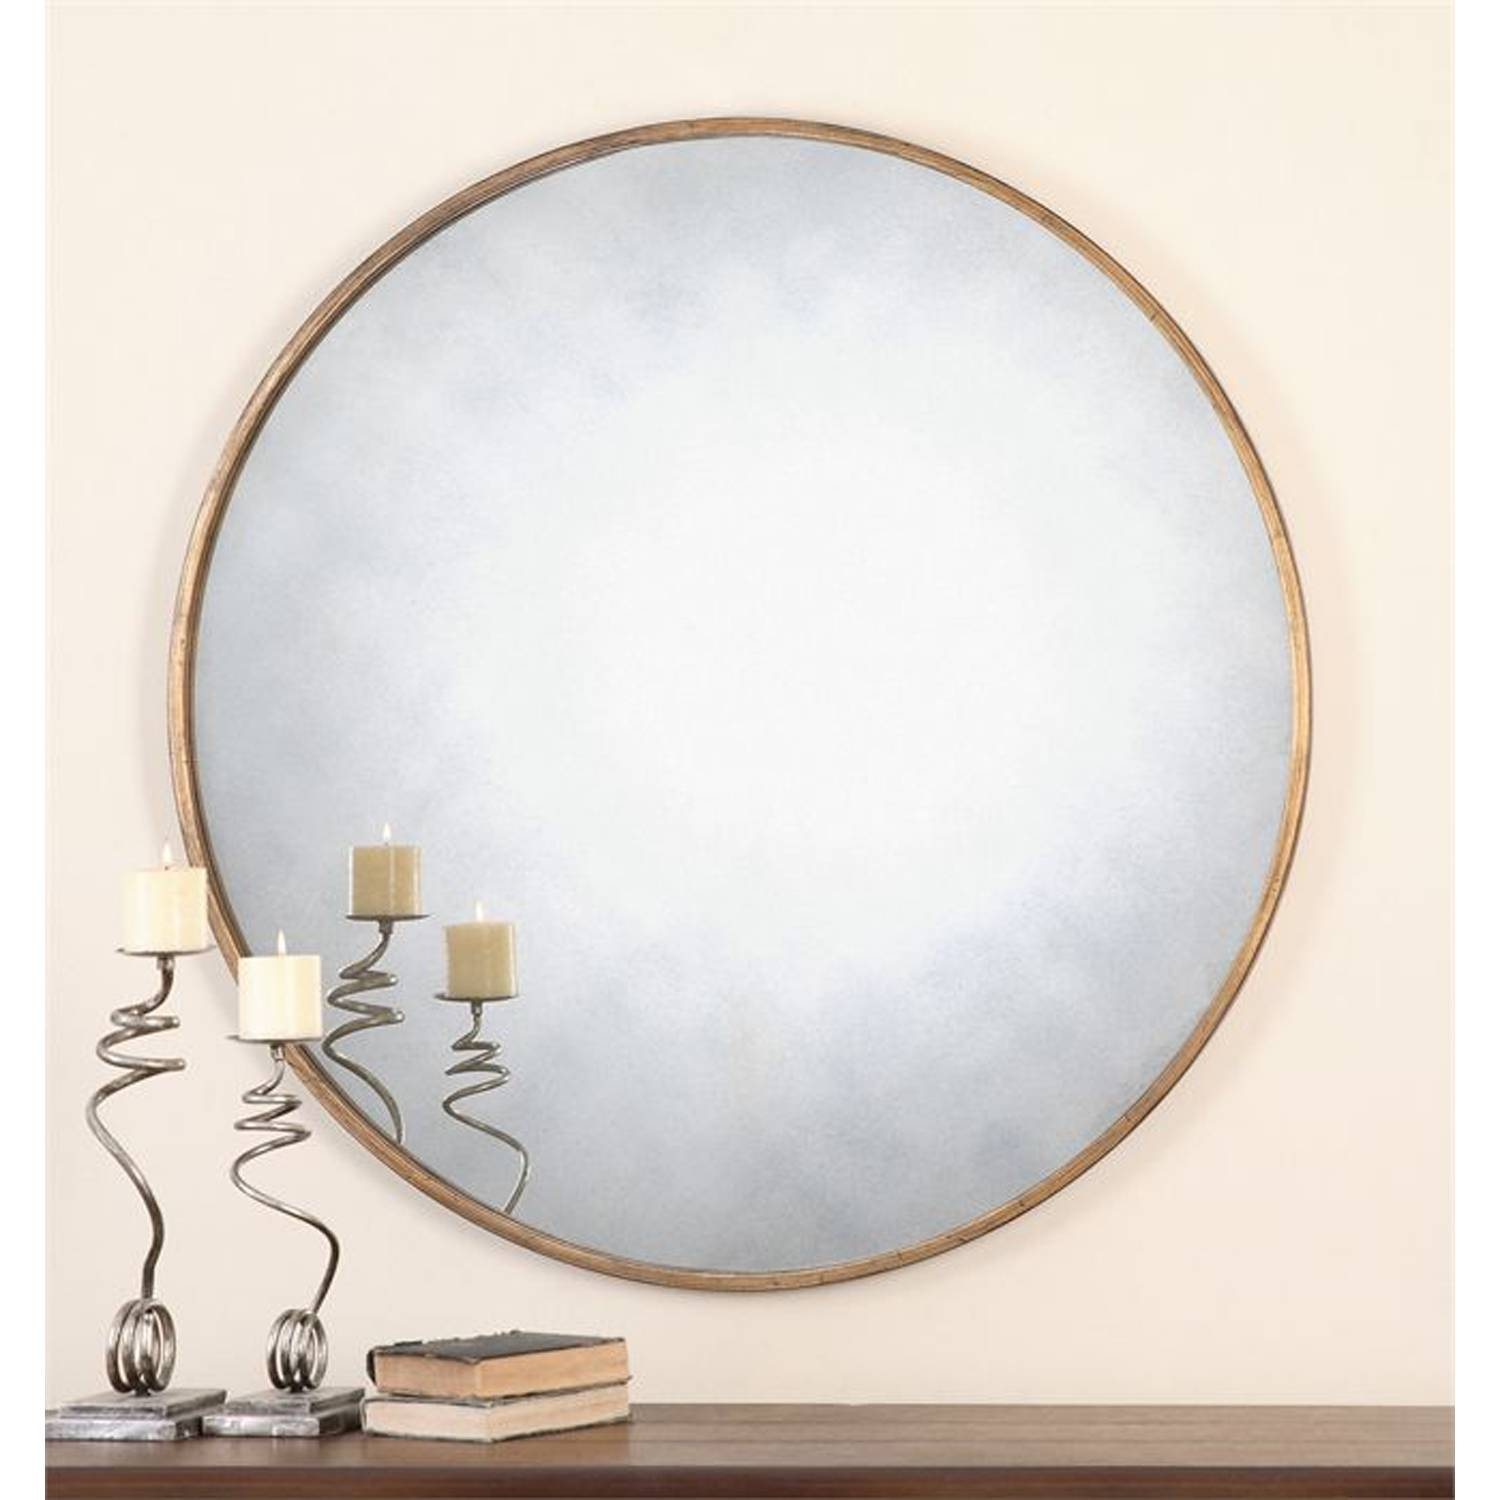 Junius Round Gold Round Mirror Uttermost Wall Mirror Mirrors Home for Gold Round Mirrors (Image 12 of 25)